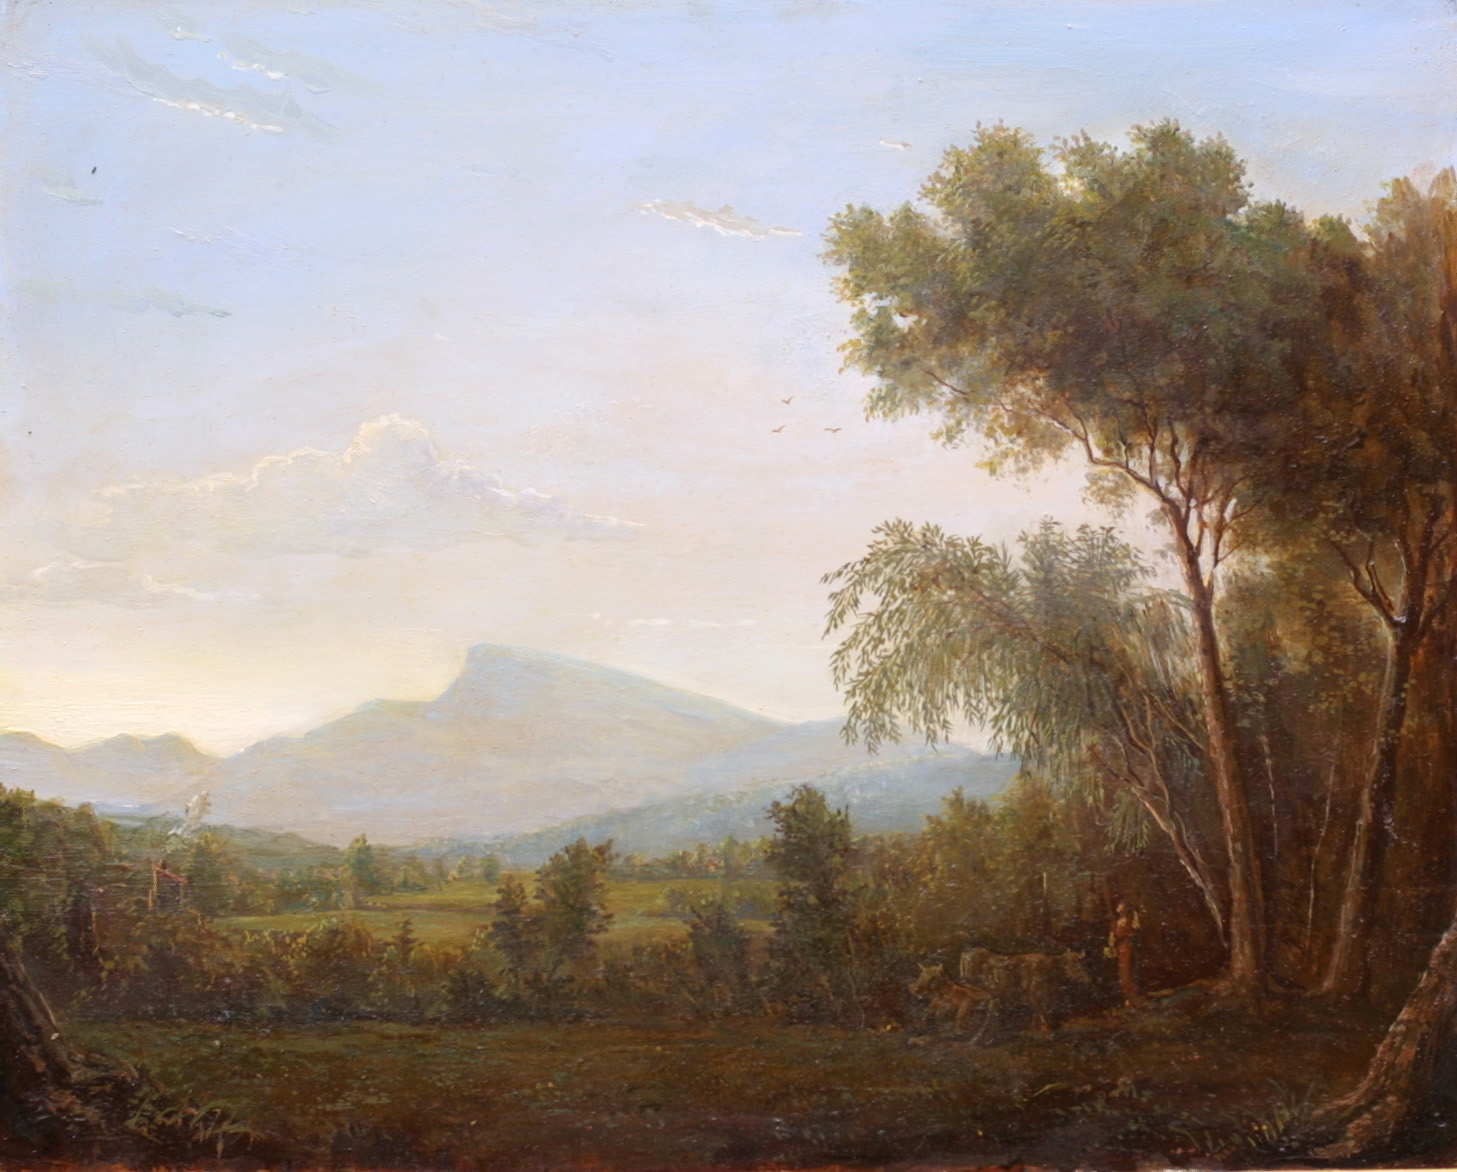 The figure in traditional landscape painting for Traditional landscape